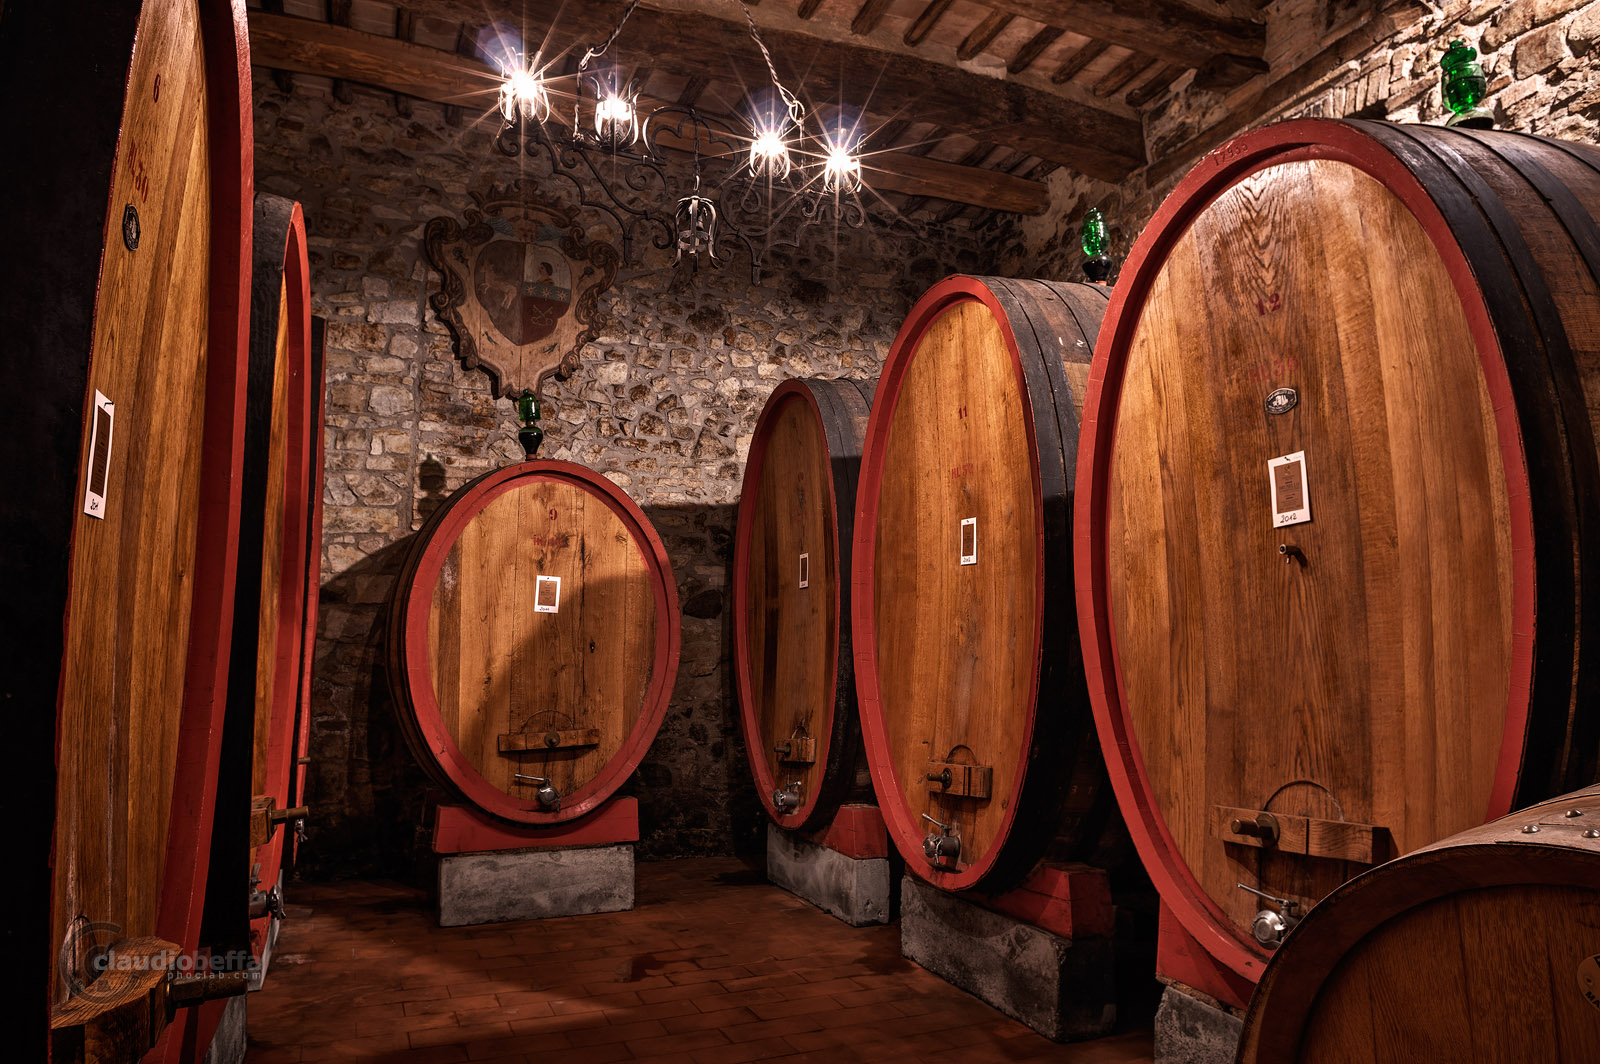 Cellar, Casks, Ancient, Wine, Wine-making, Costanti, Tuscany, Toscana, Val d'Orcia, Montalcino, Italy, Italia, Ancient wine cellars of Tuscany